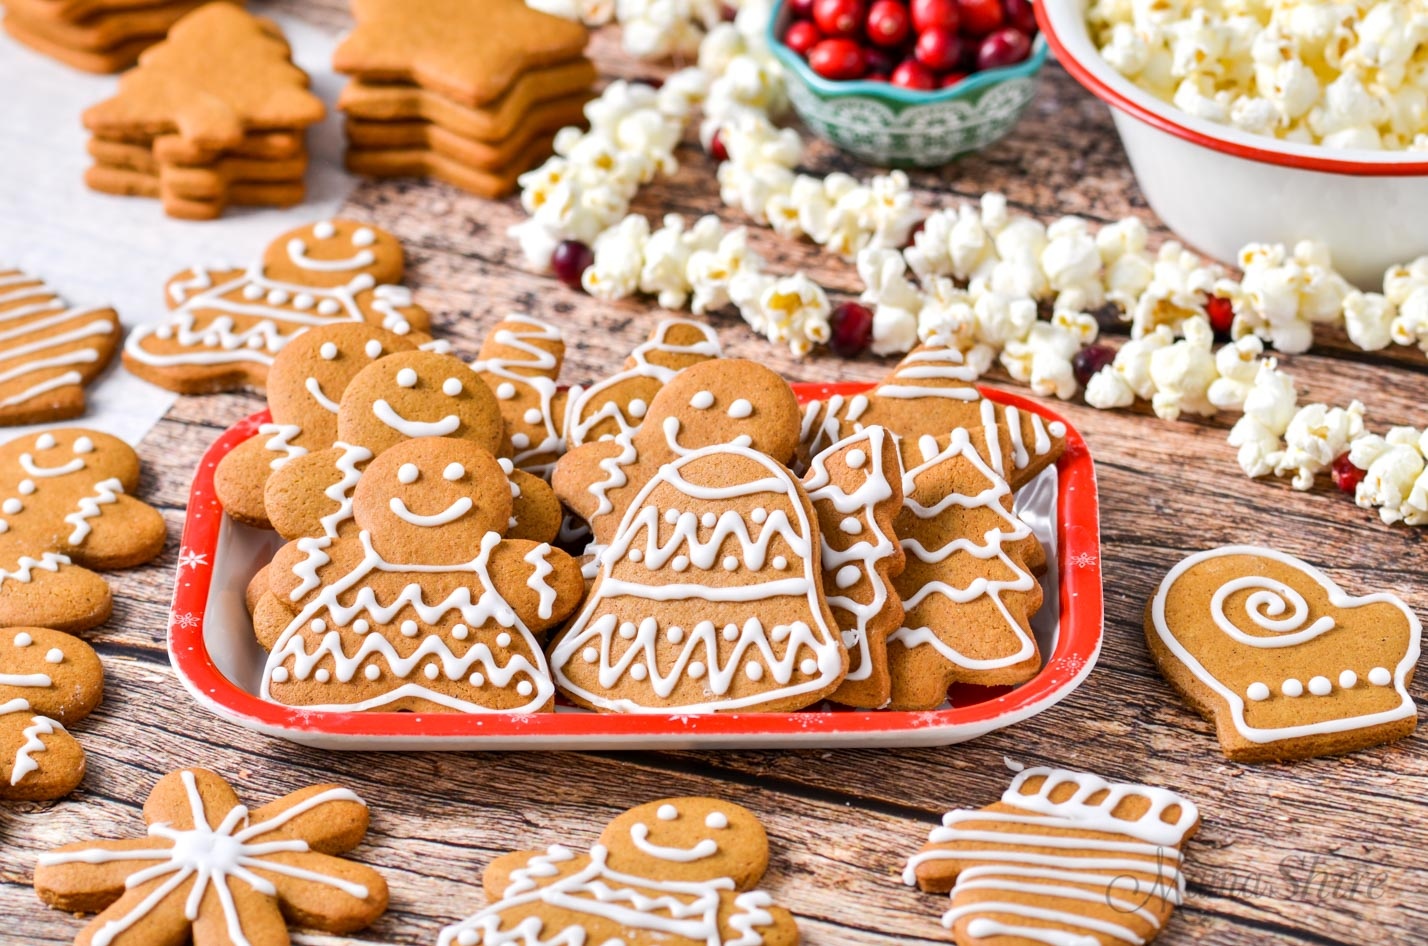 A tray of festive gluten-free gingerbread cookies.